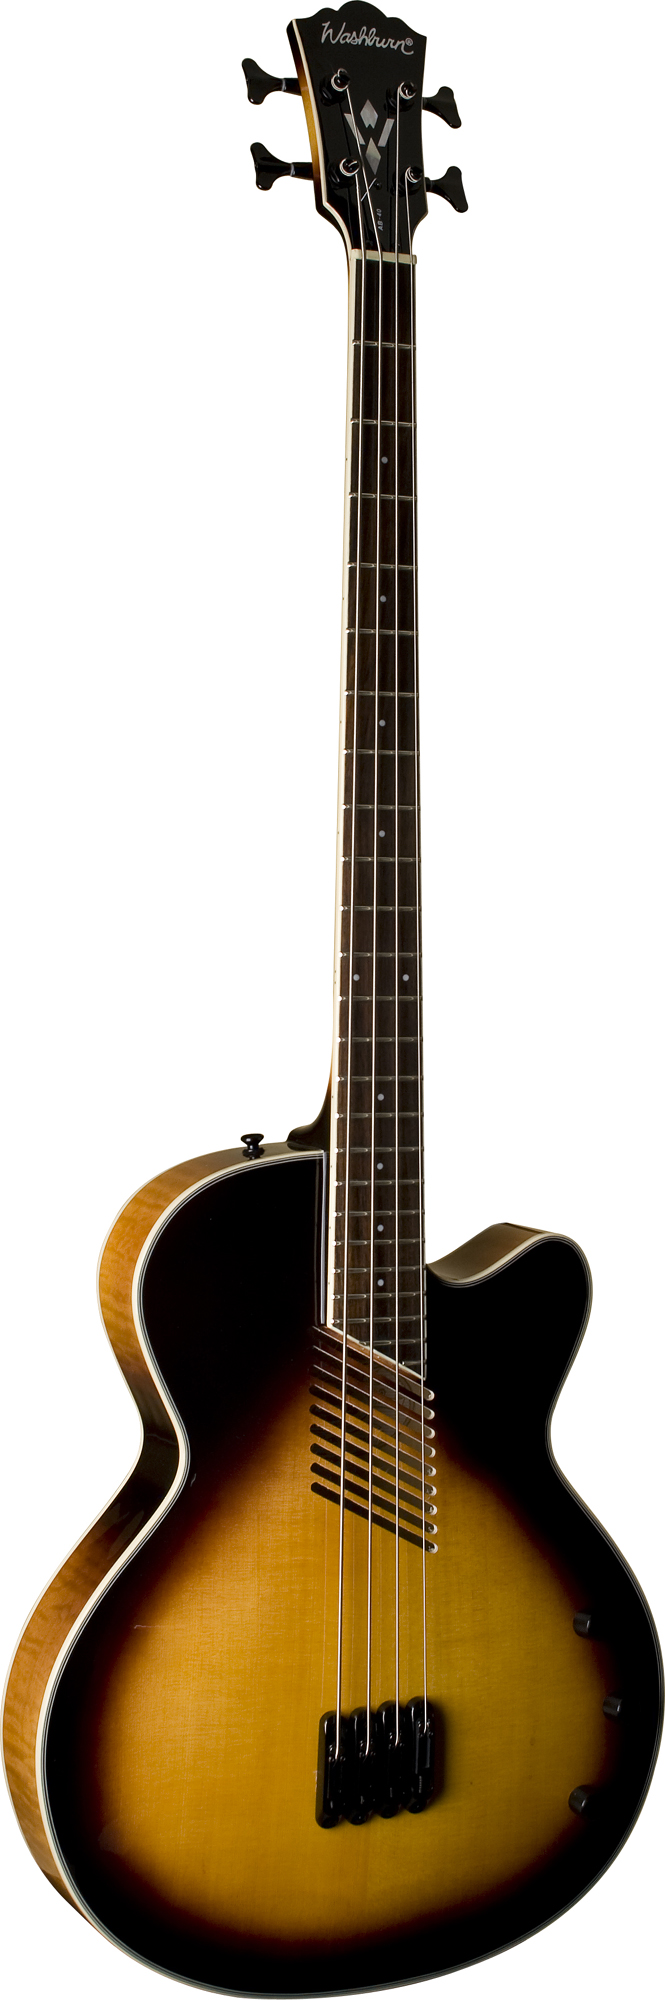 Huge  Looking For Acoustic Bass Guitar Plans